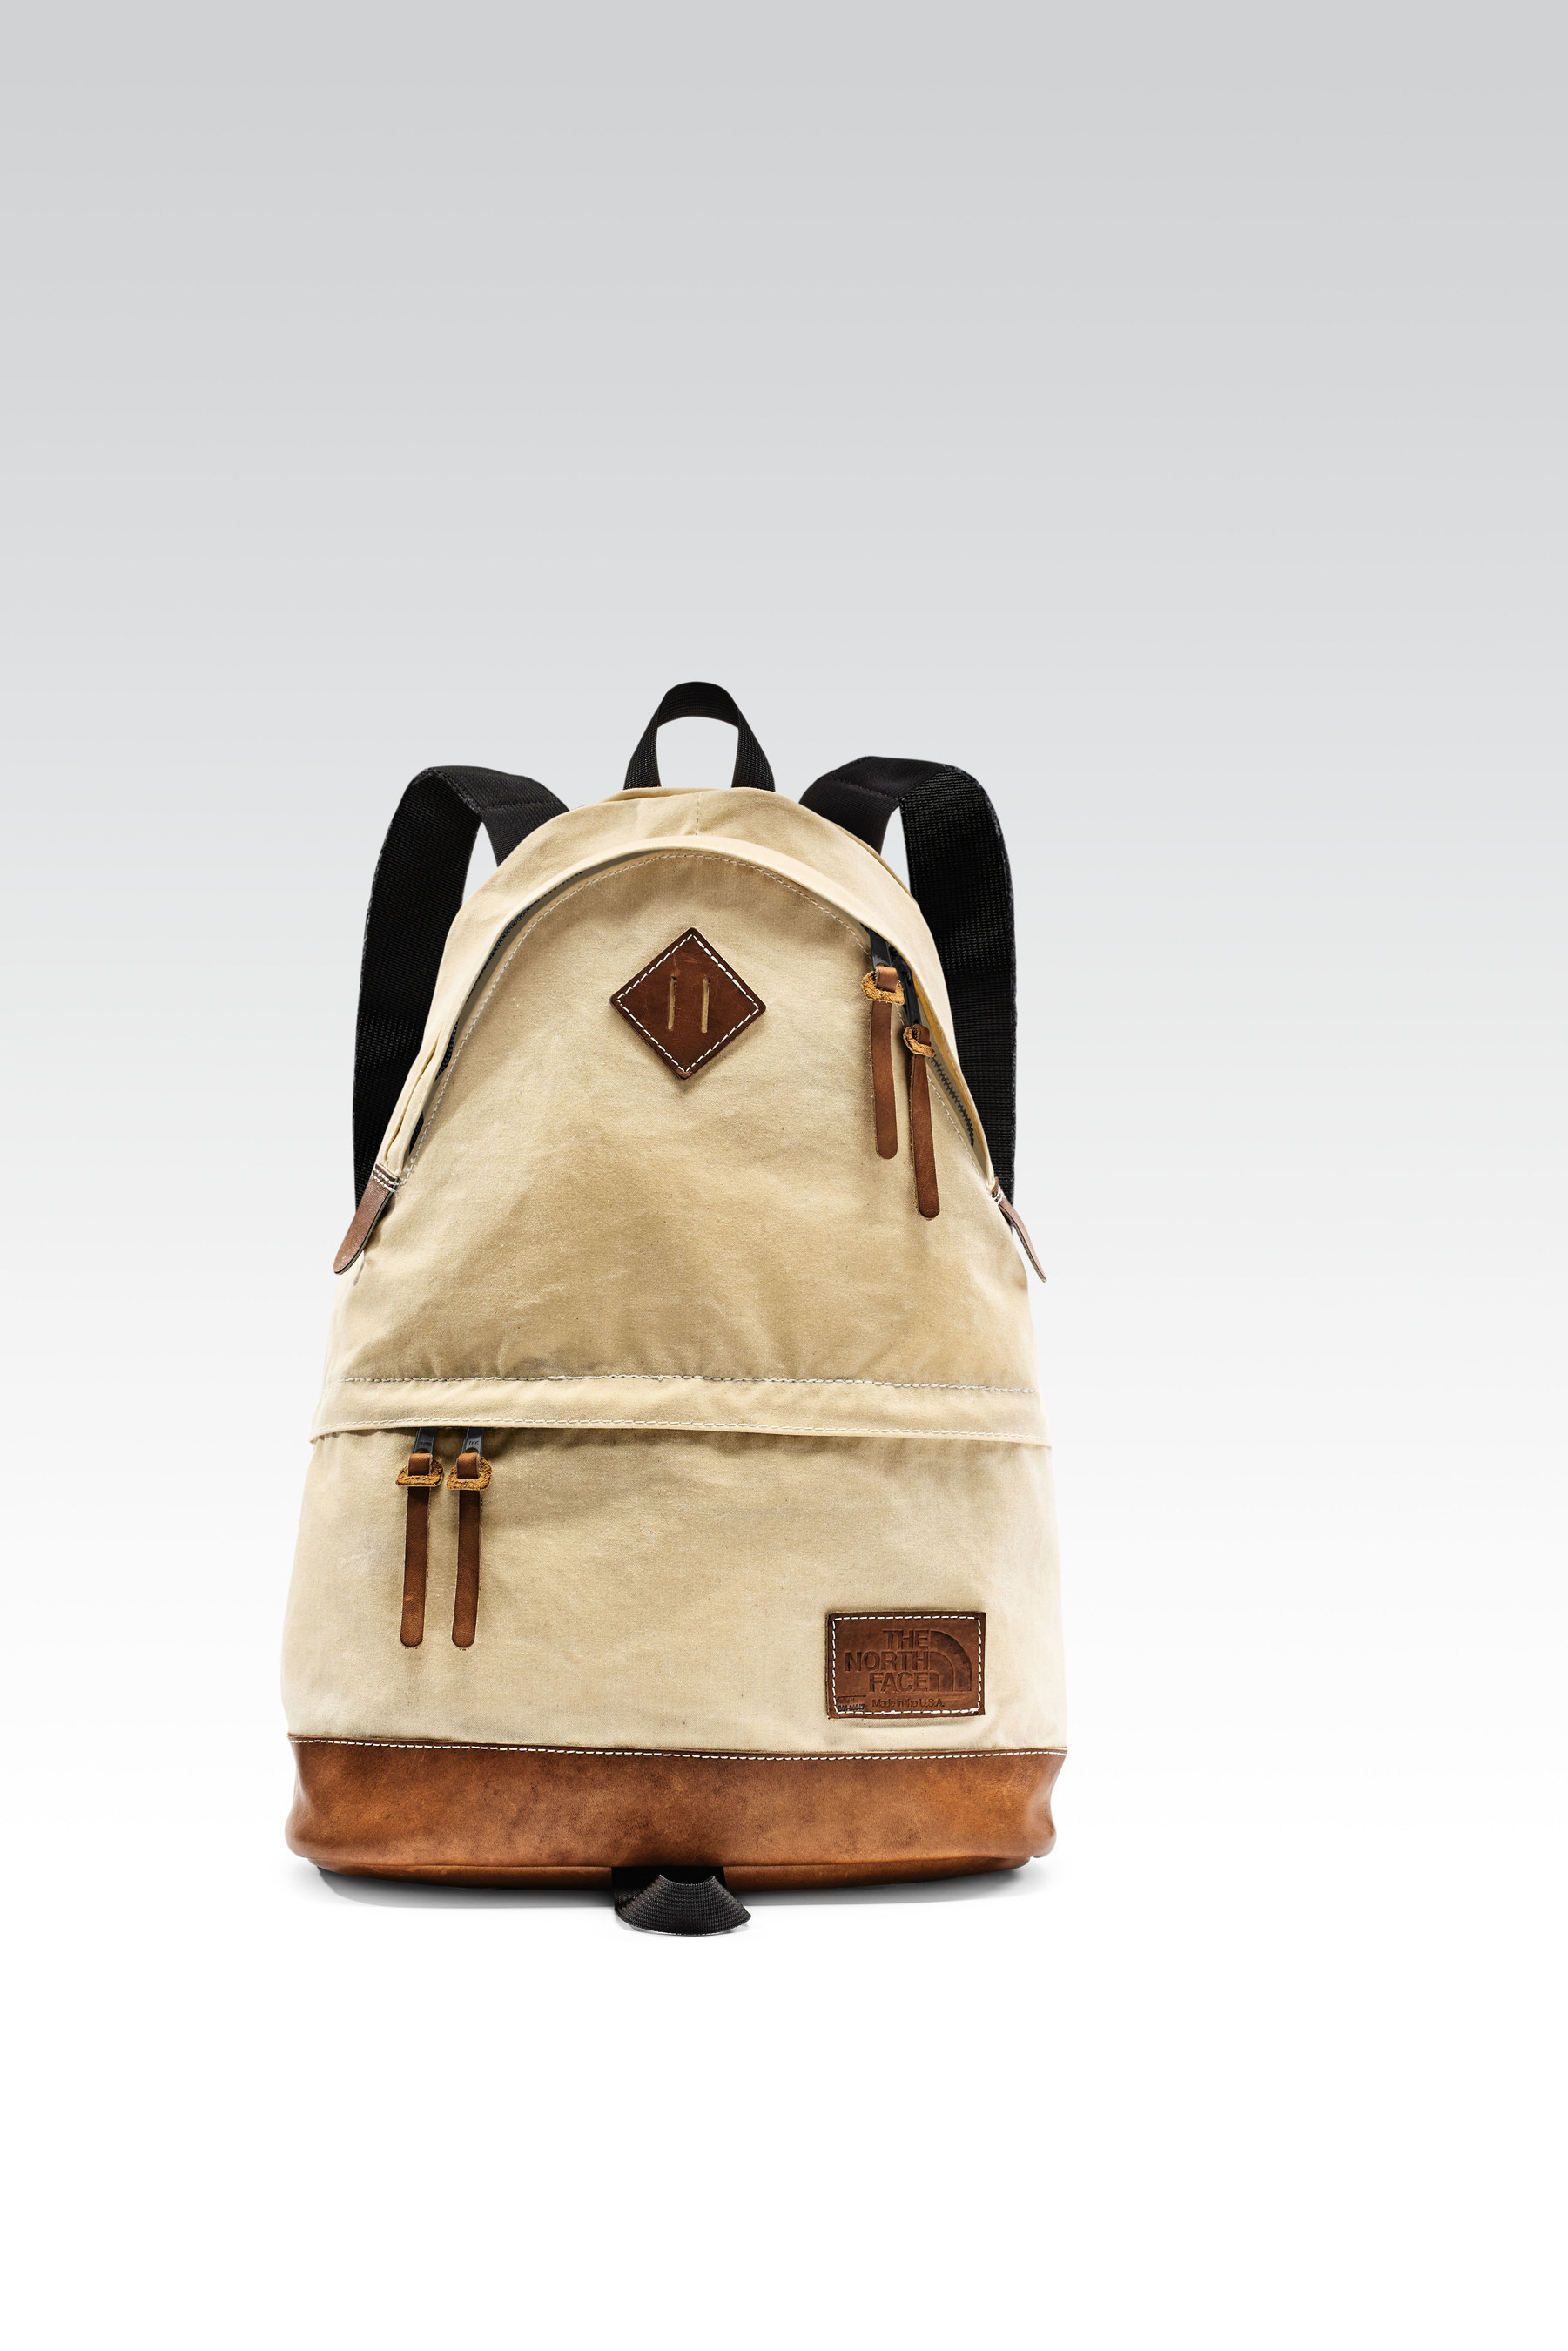 The North Face Urban Exploration Concept Shop will feature exclusive and limited edition product like the Original Daypacks and Soft Duffels reissue. '68 Daypack ($225 USD)